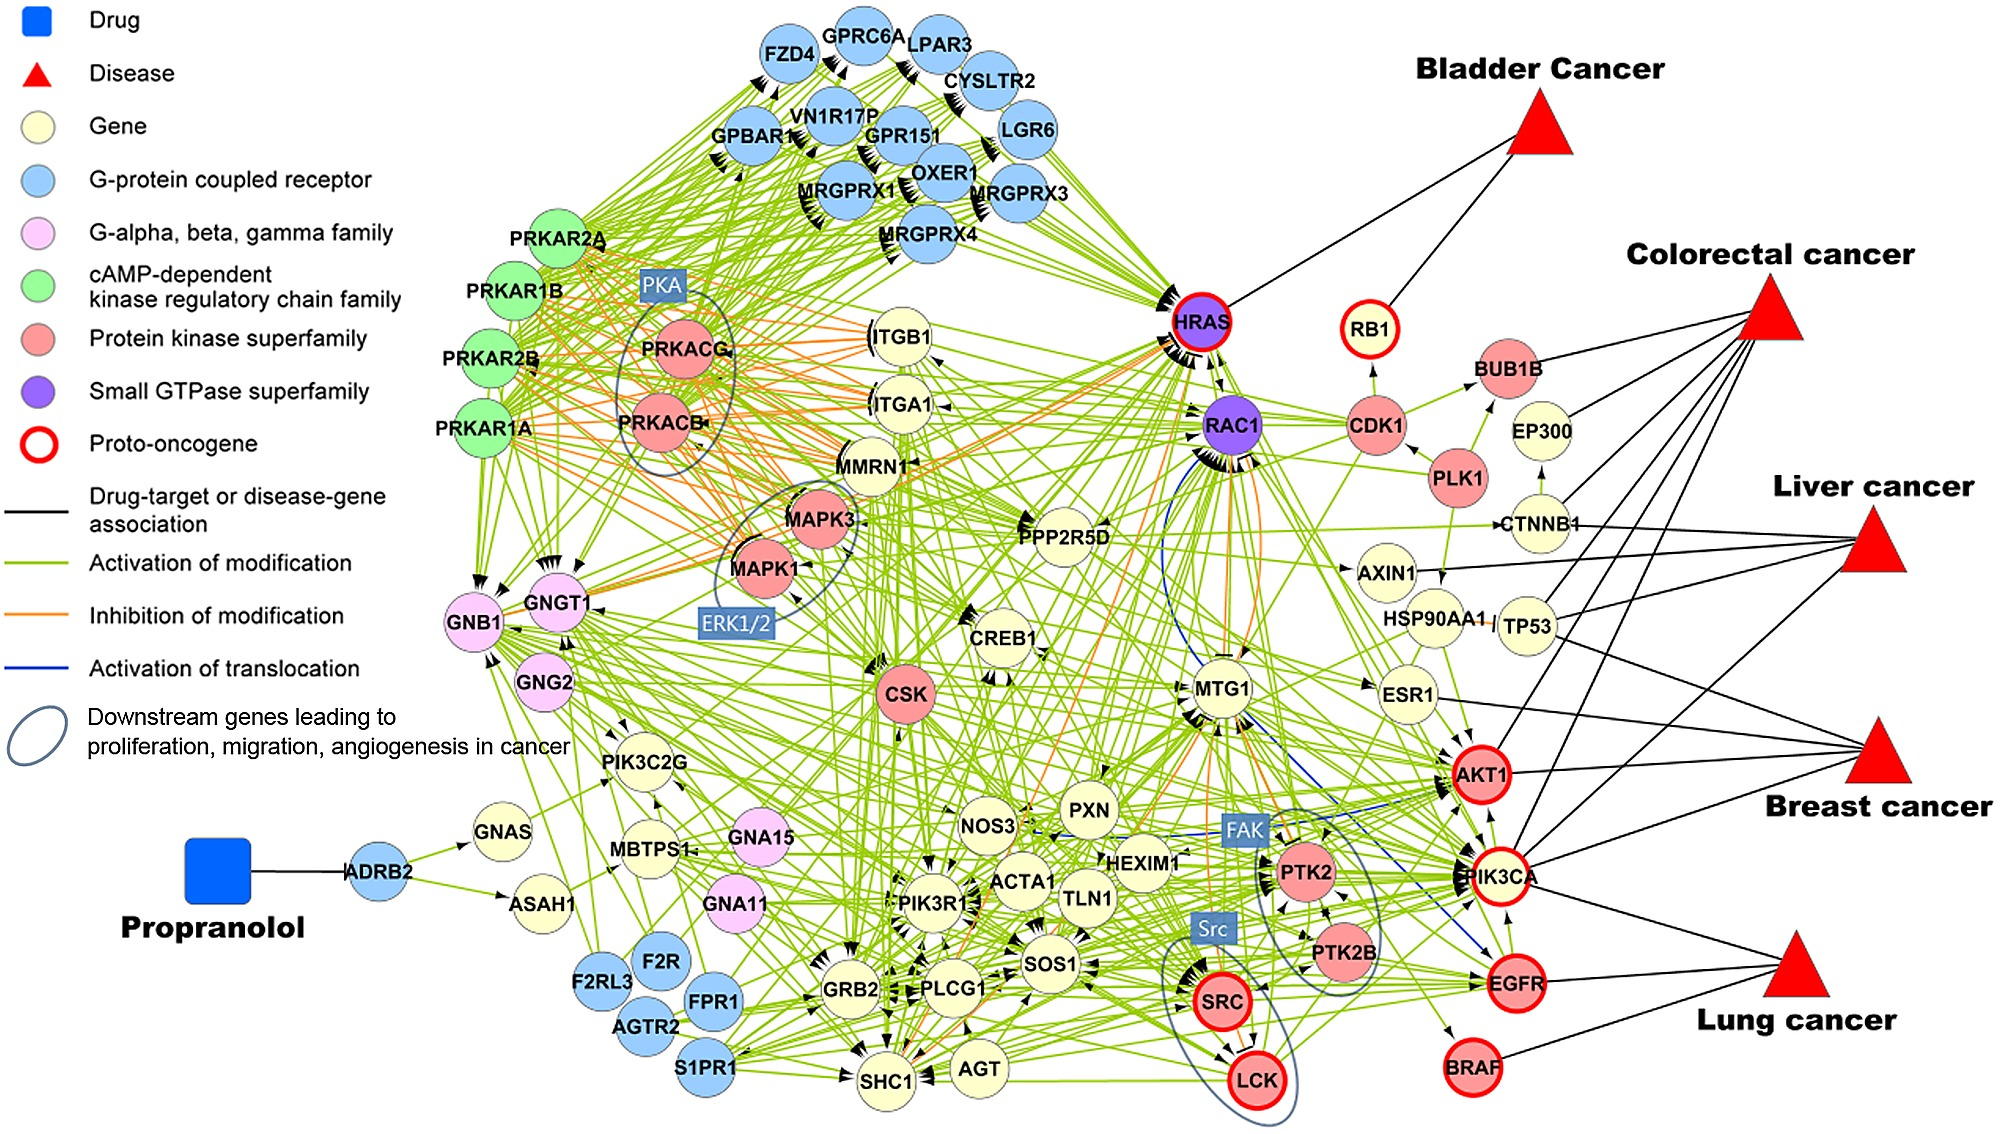 cancer genetic network)